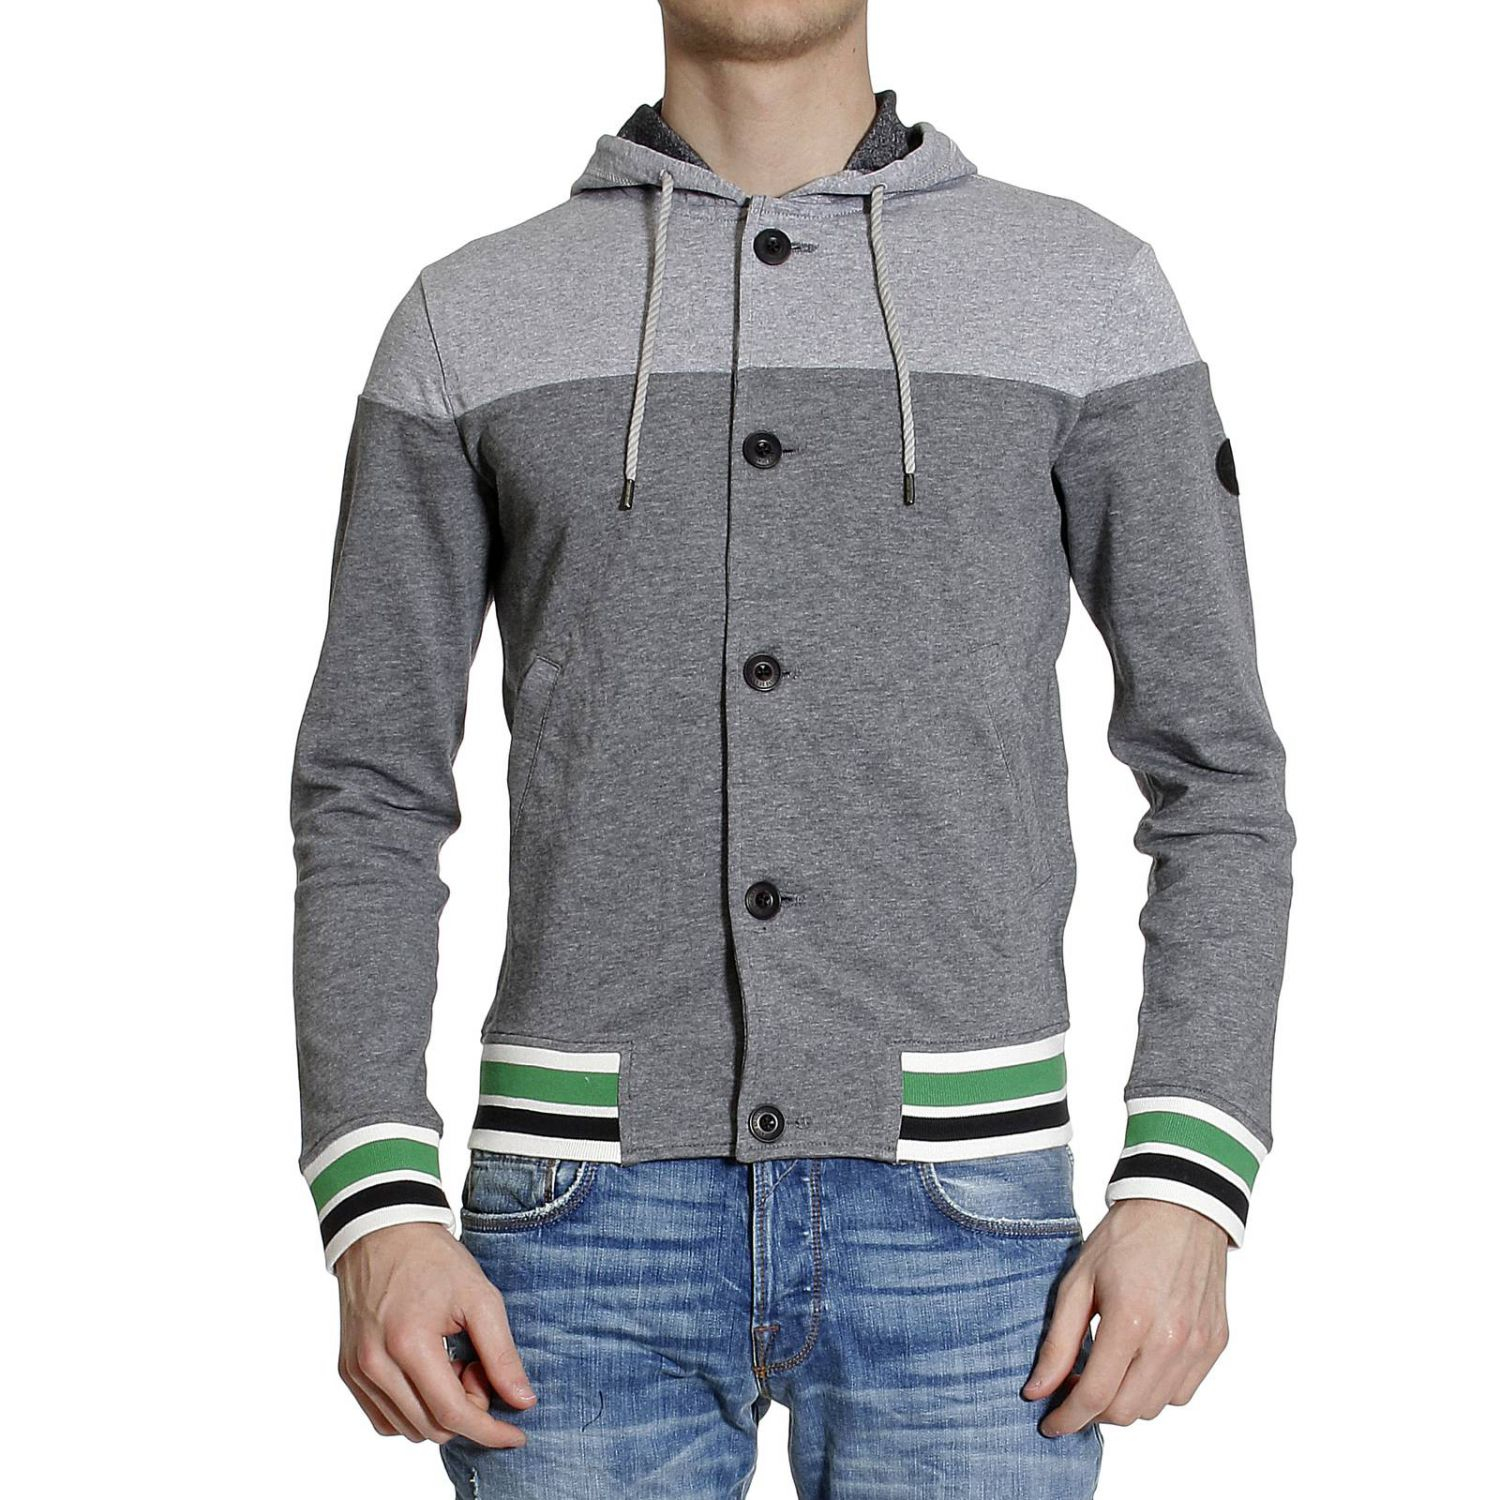 Armani Jeans Sweater Sweetshirt Cardigan With Hoodie In